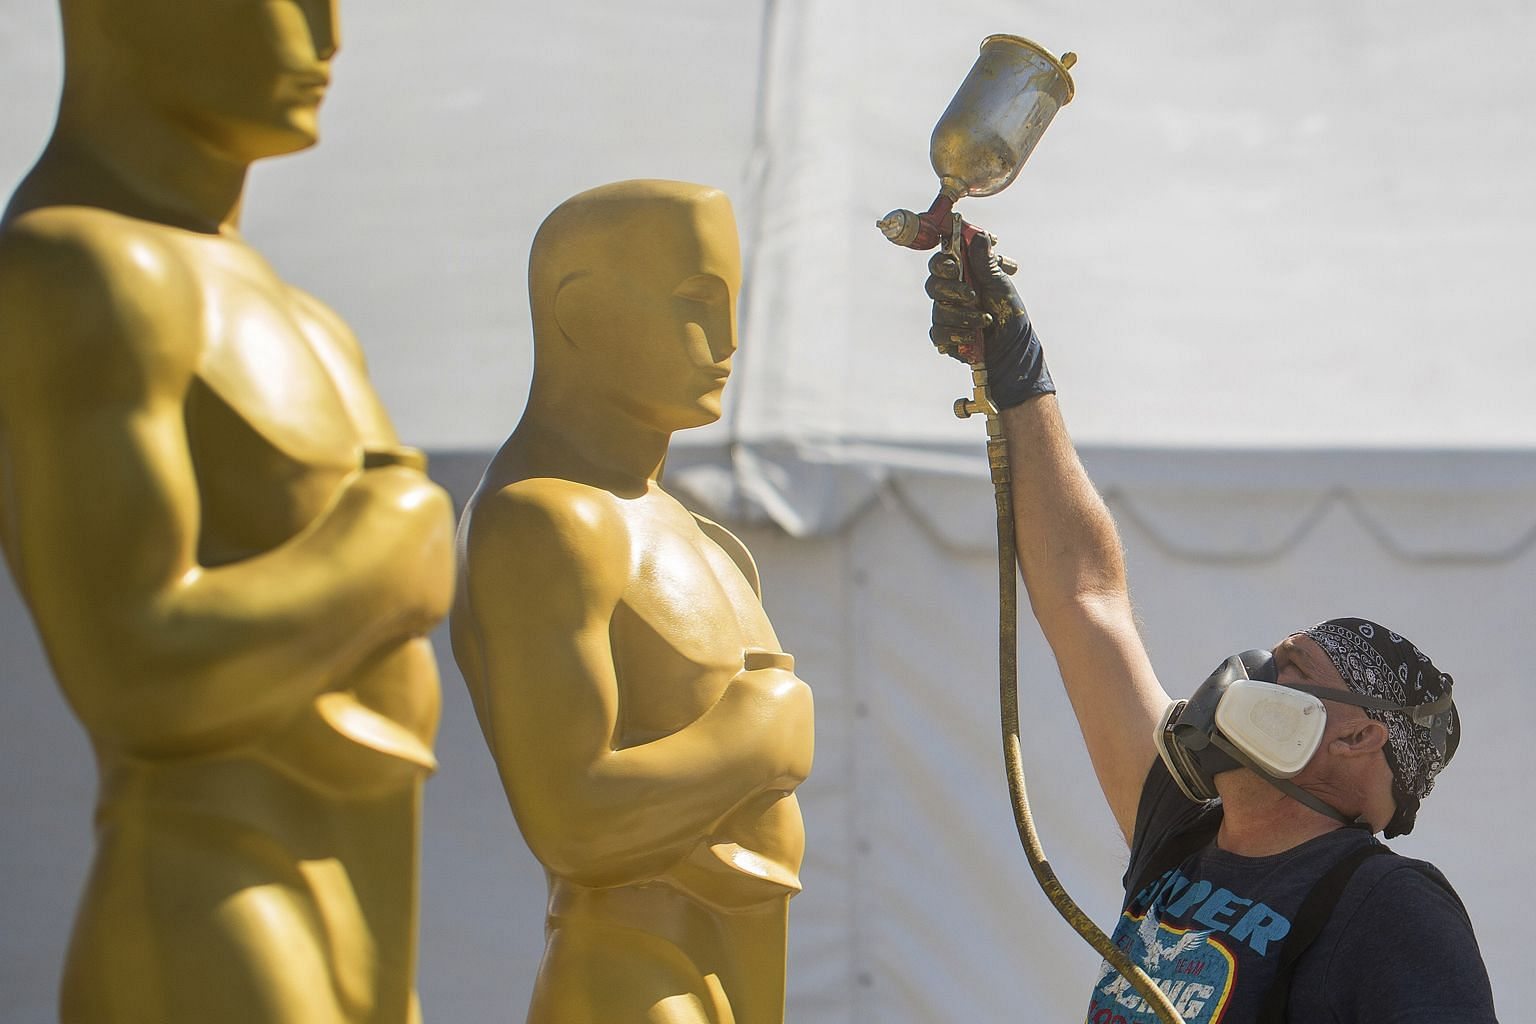 Stage craft artist Rick Roberts giving Oscar statues a fresh coat of paint in preparation for the 89th Academy Awards in Los Angeles today (tomorrow, Singapore time).